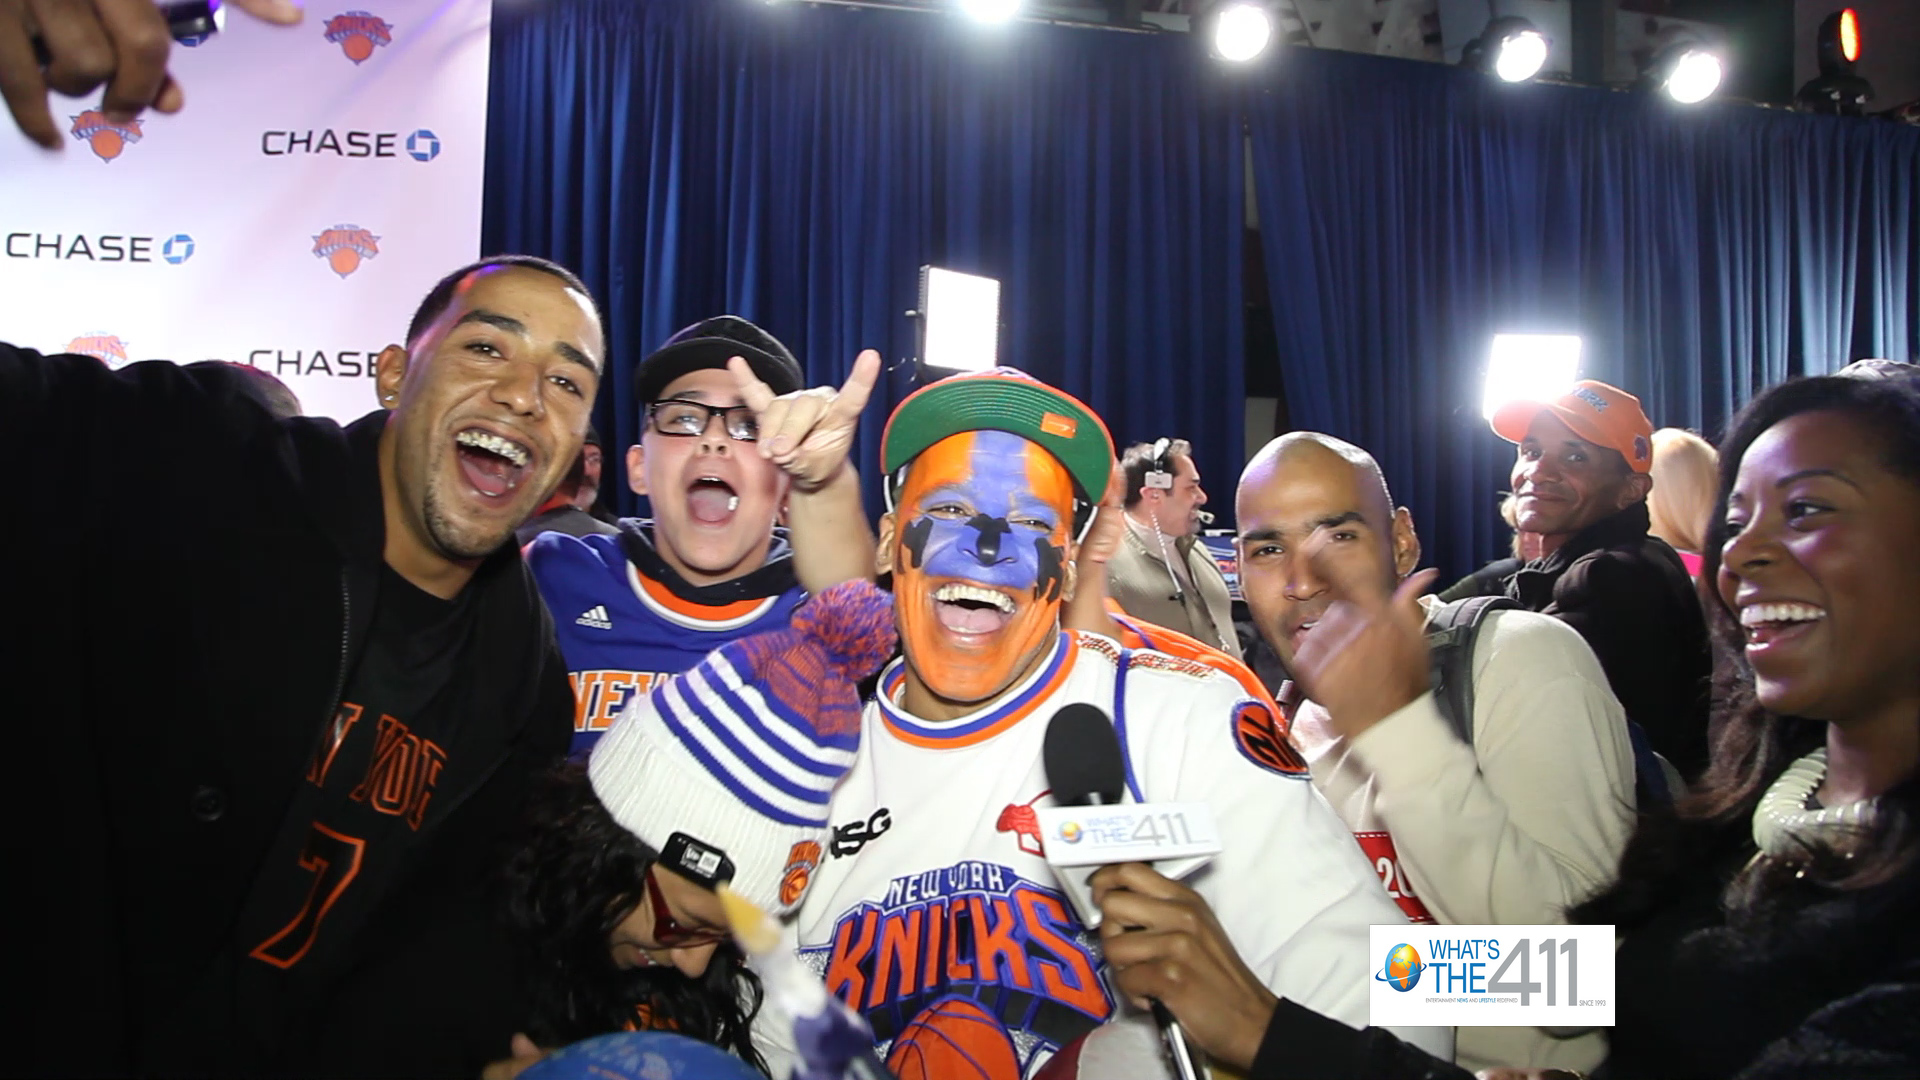 Bianca Peart interviewing NY Knicks fans on the Chase Blue Carpet at MSG